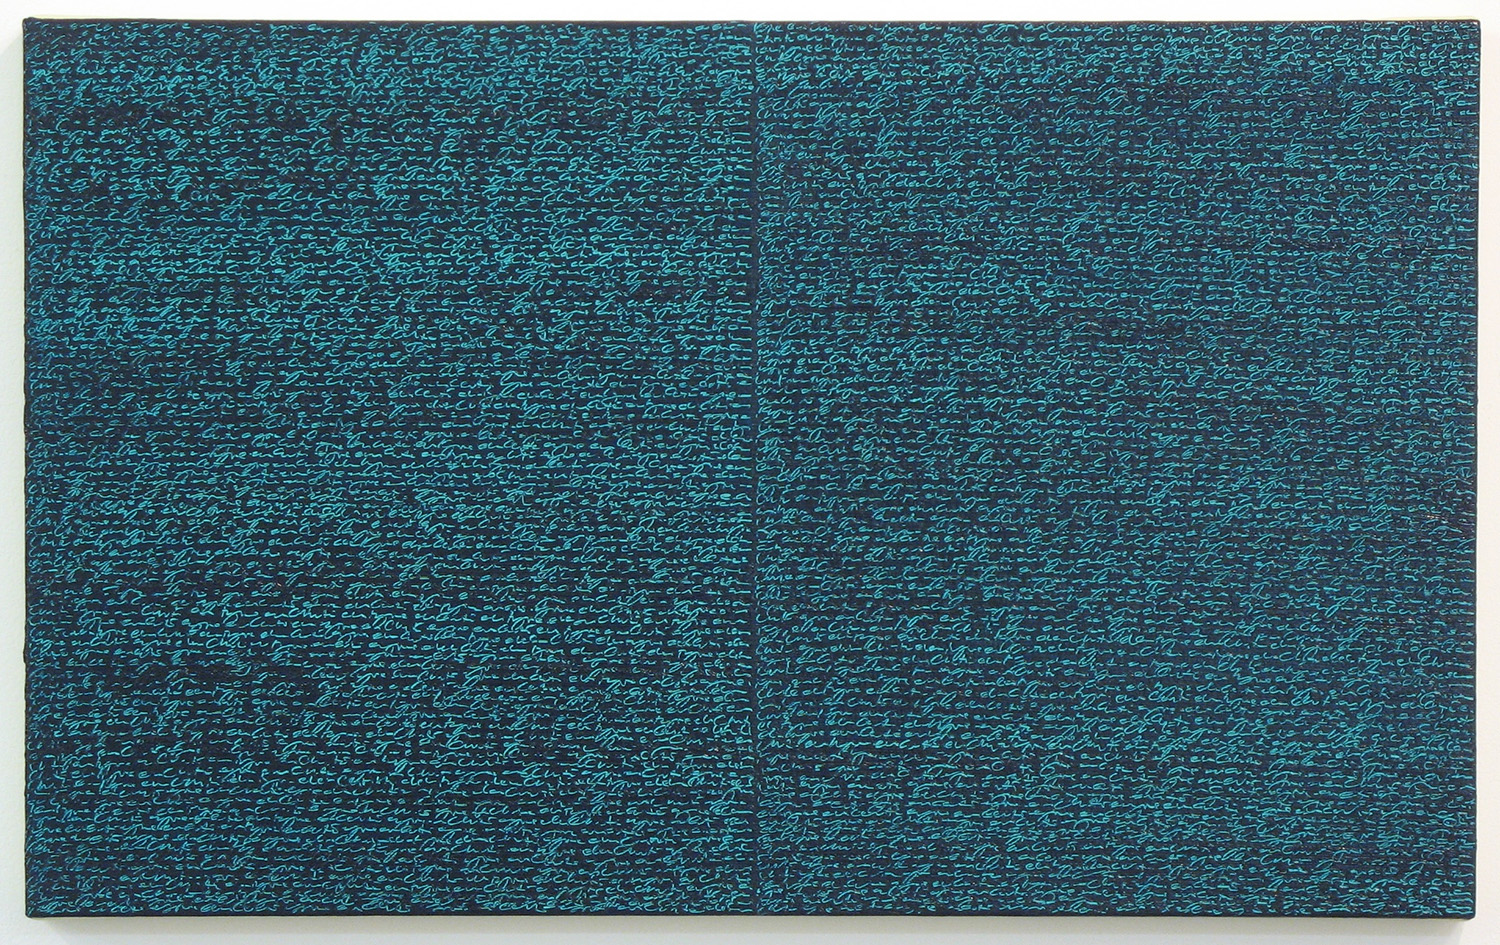 Open Book -green-green dark-<br>oil and amber on canvas over panel, 37 x 60 cm, 2008